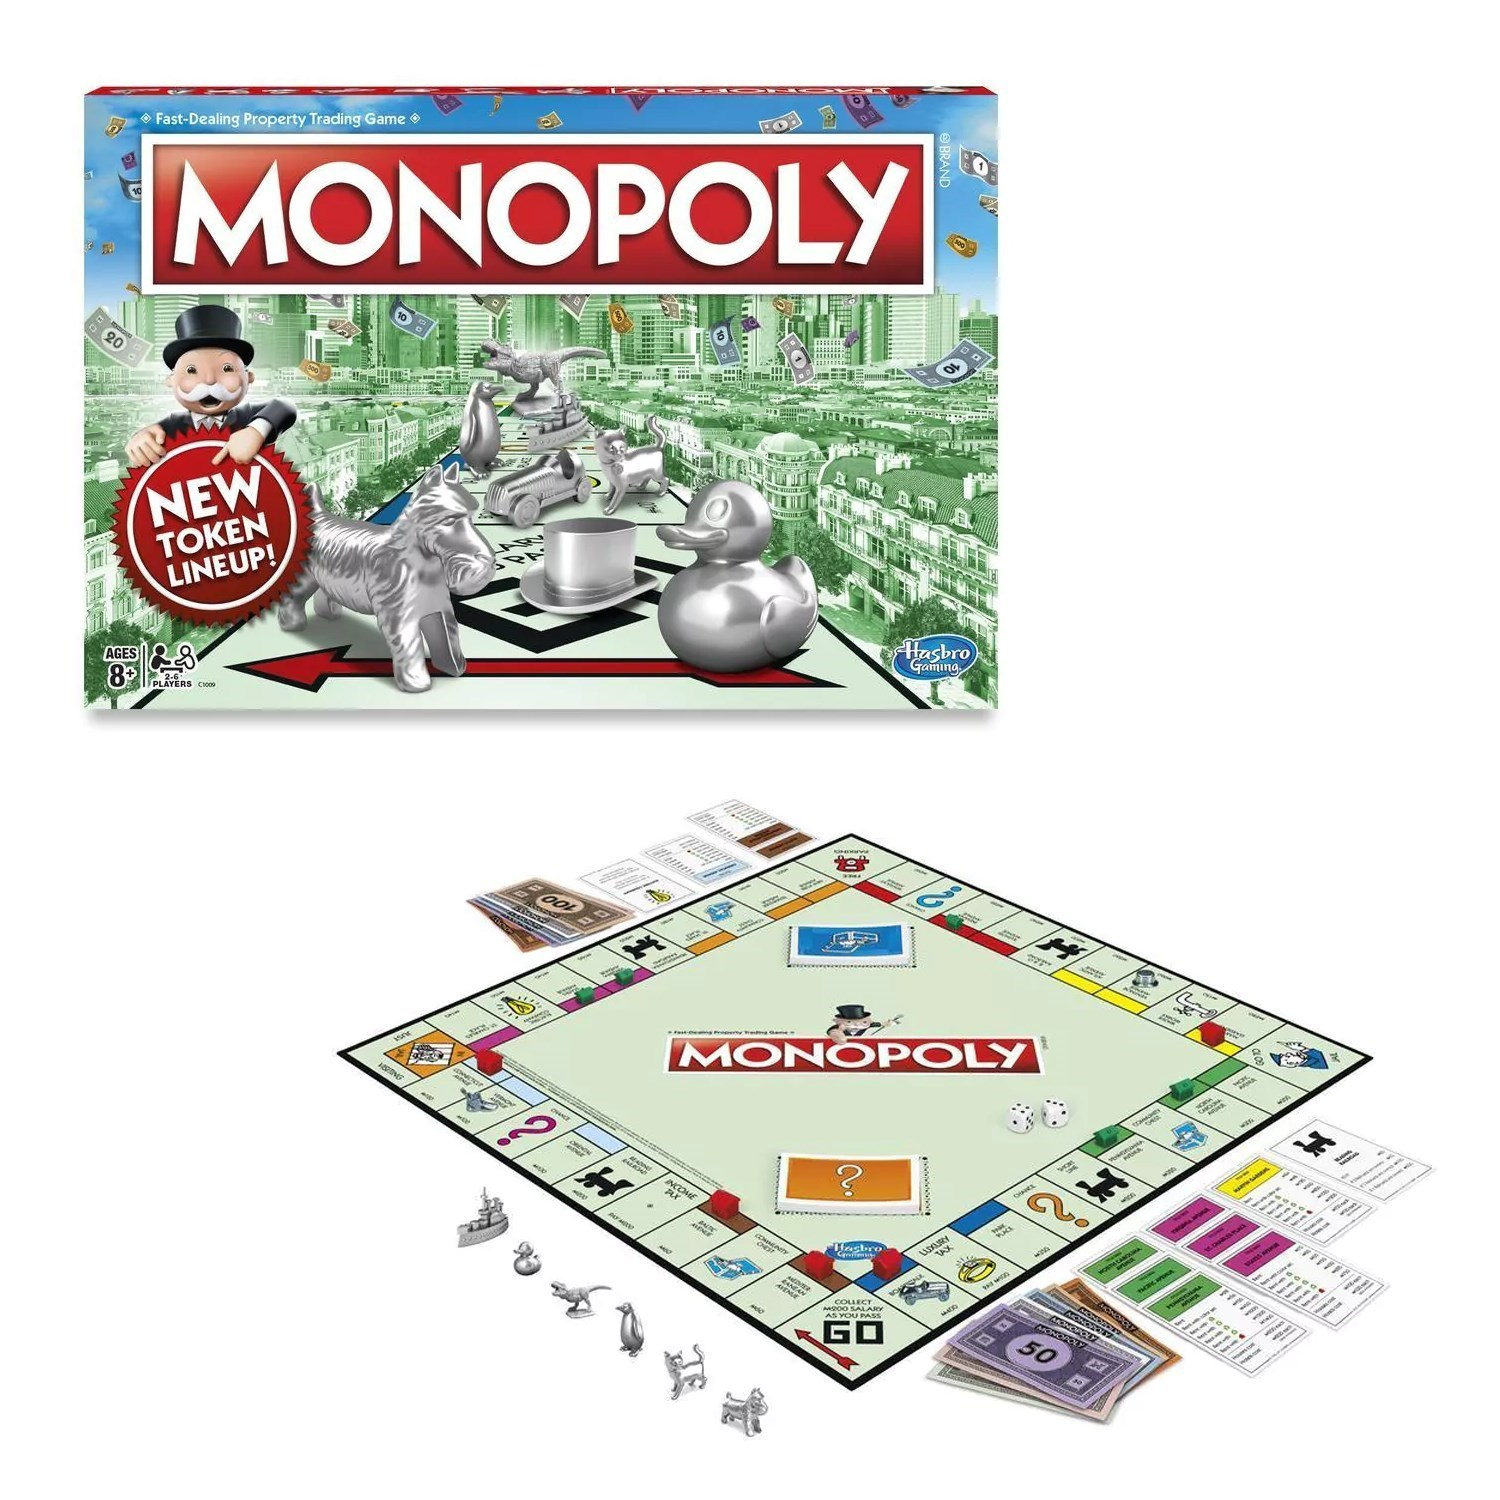 monopoli dating site Dating monopoly games dating someone with a high iq the specific guardian dating fees graphics of the game board, cards, and pieces are protected by copyright law and trademark law, as is dating monopoly games the specific wording of the games rules.